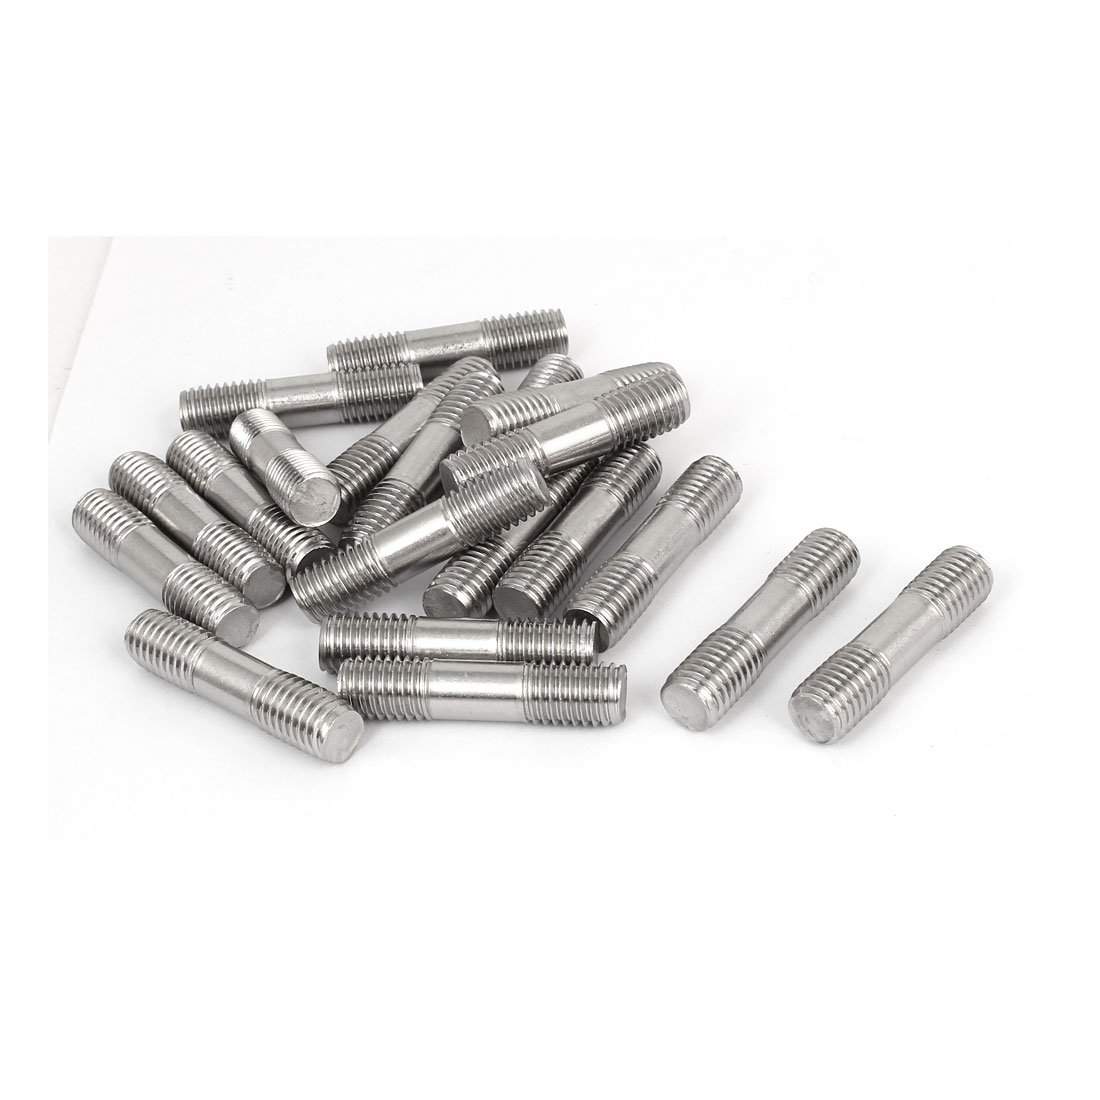 uxcell M12x50mm Double End Thread 304 Stainless Steel Tight Adjustable Push Rod Stud 20pcs